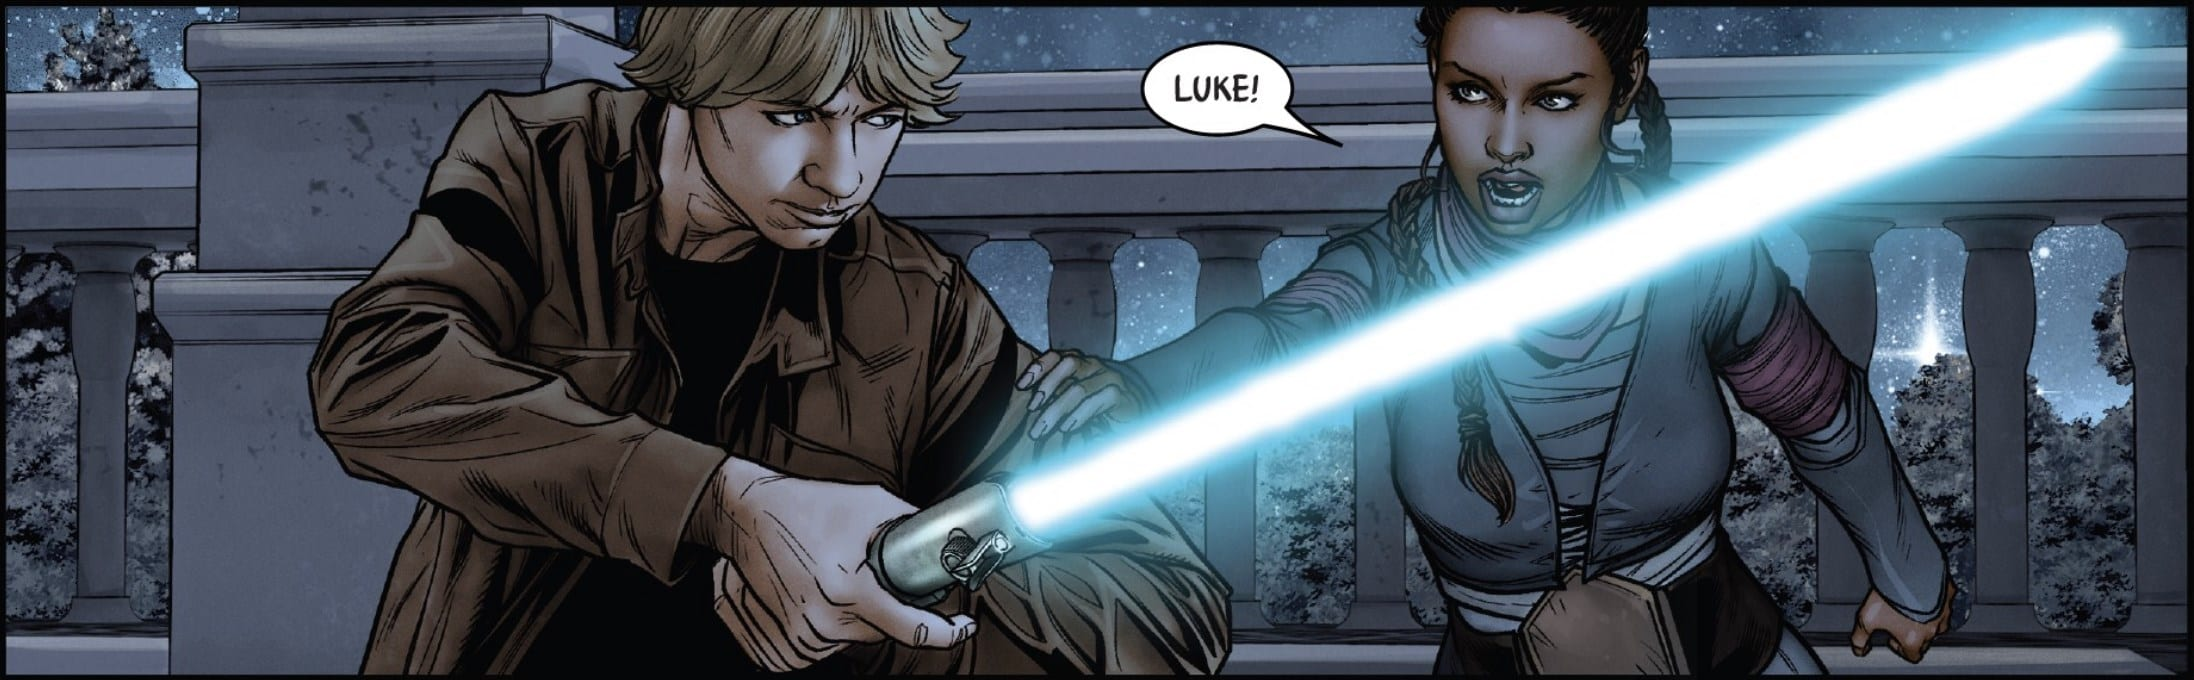 Star Wars #60 - Luke and Tula